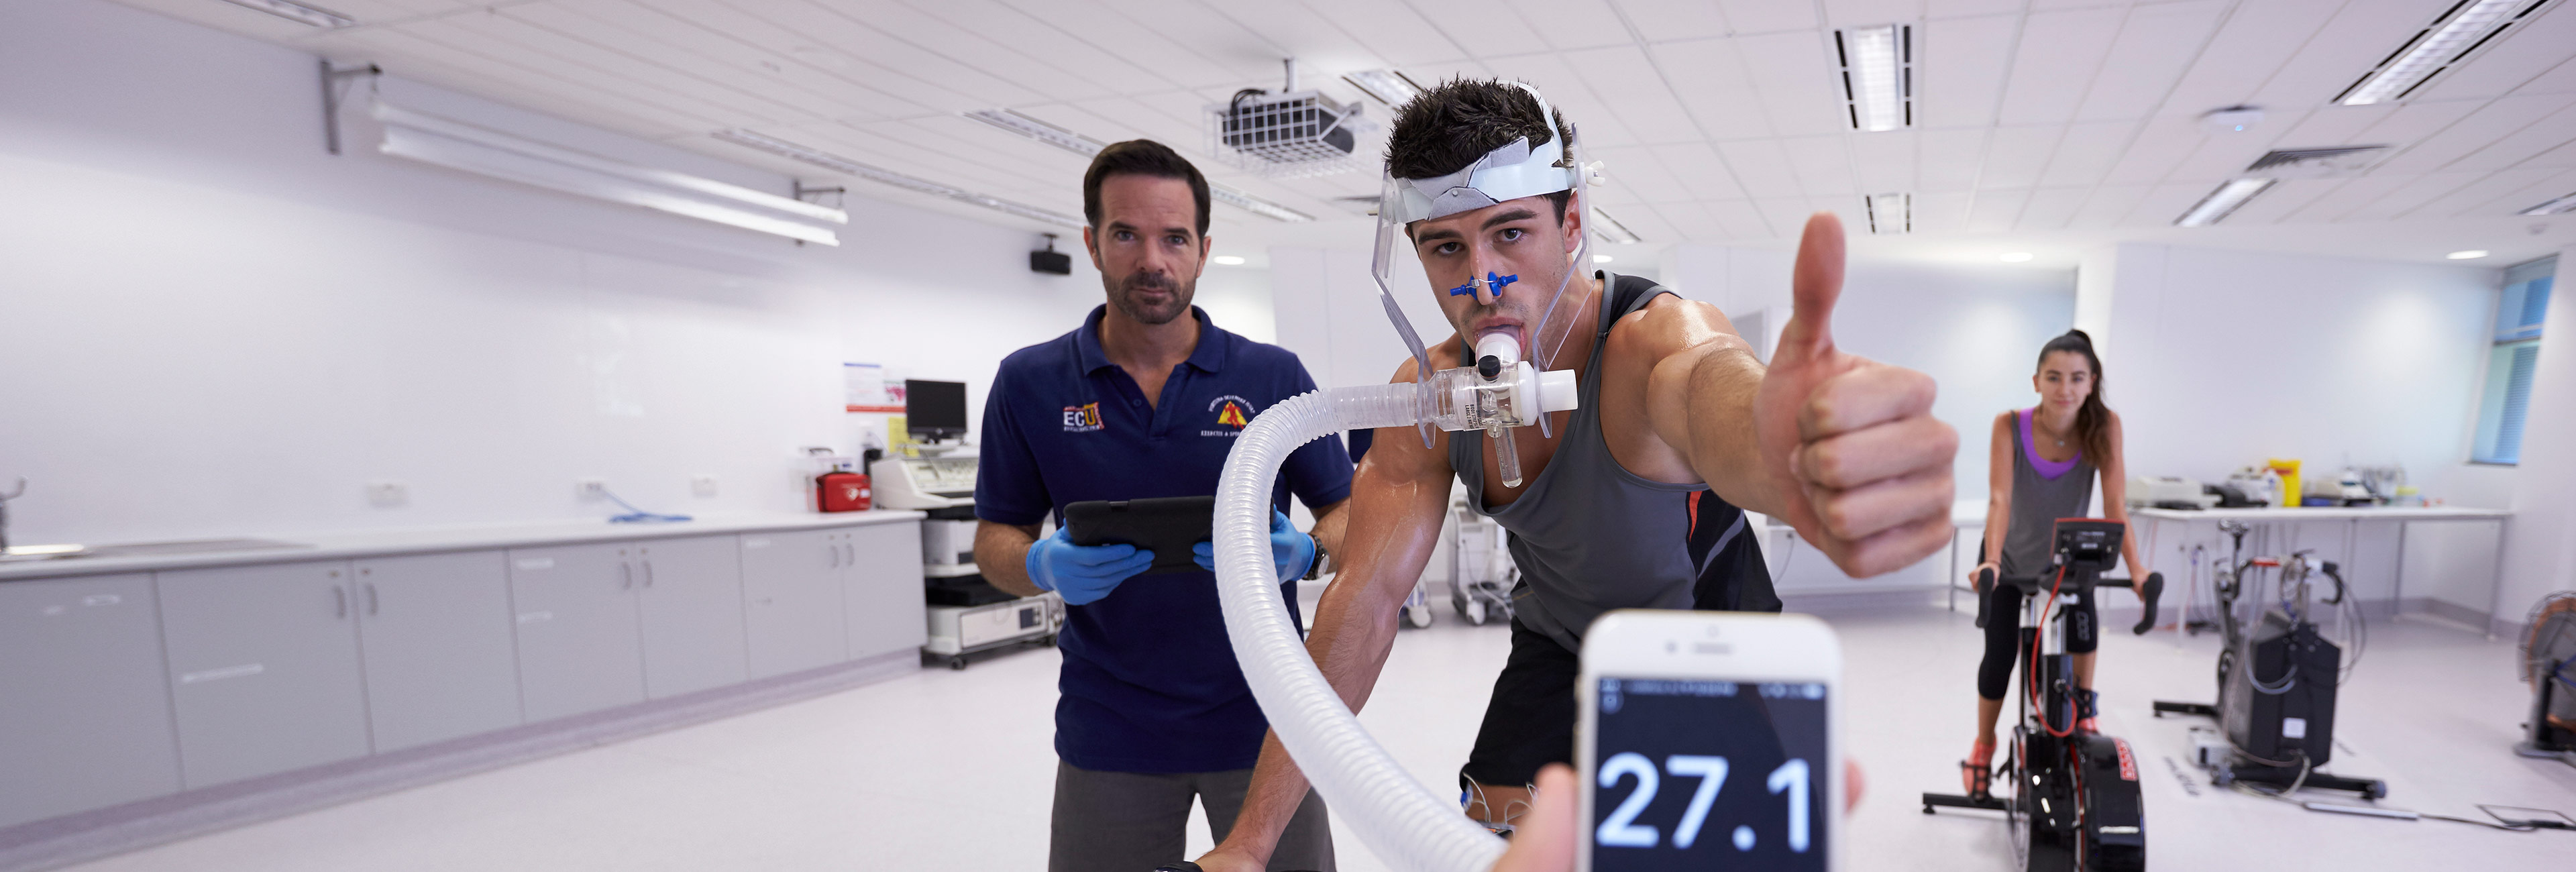 Athlete being measured on exercise bike